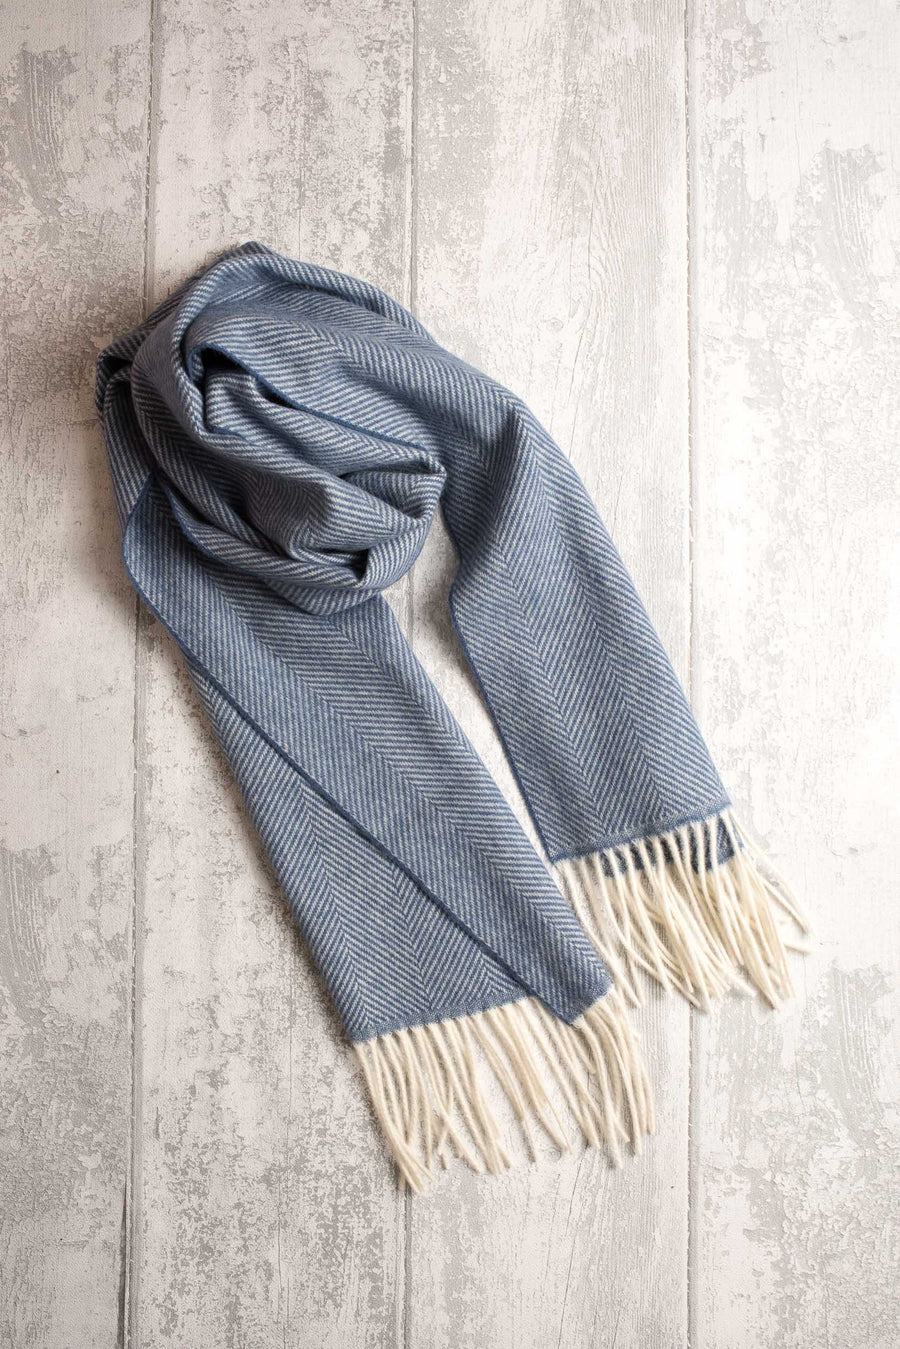 herringbone blue wool scarf details view Made in Italy